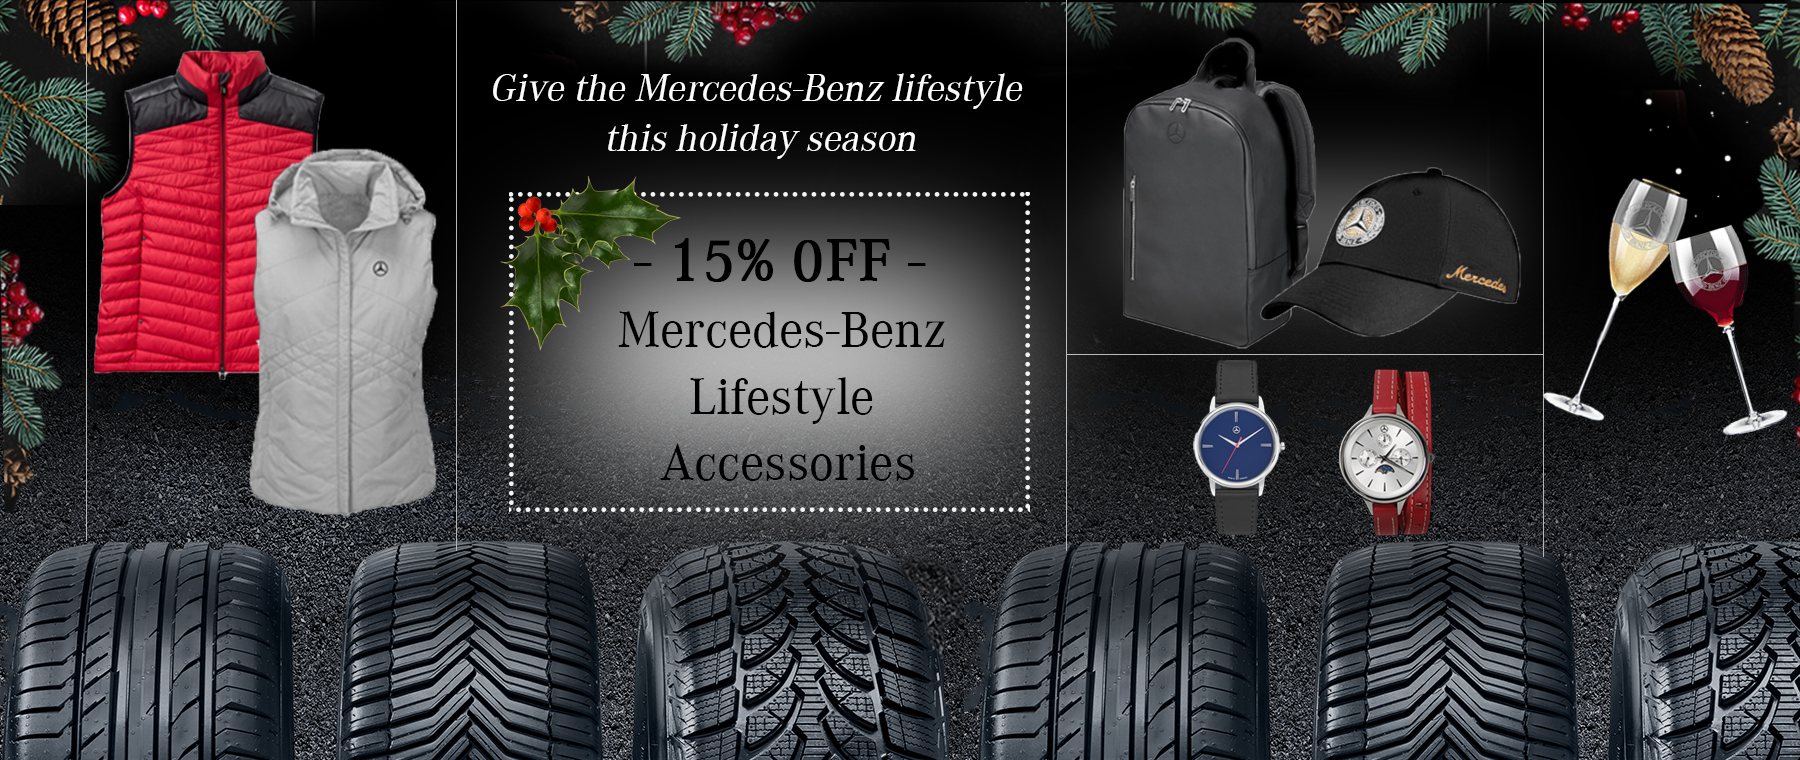 Mercedes-Benz Parts and Lifestyle Accessories Special